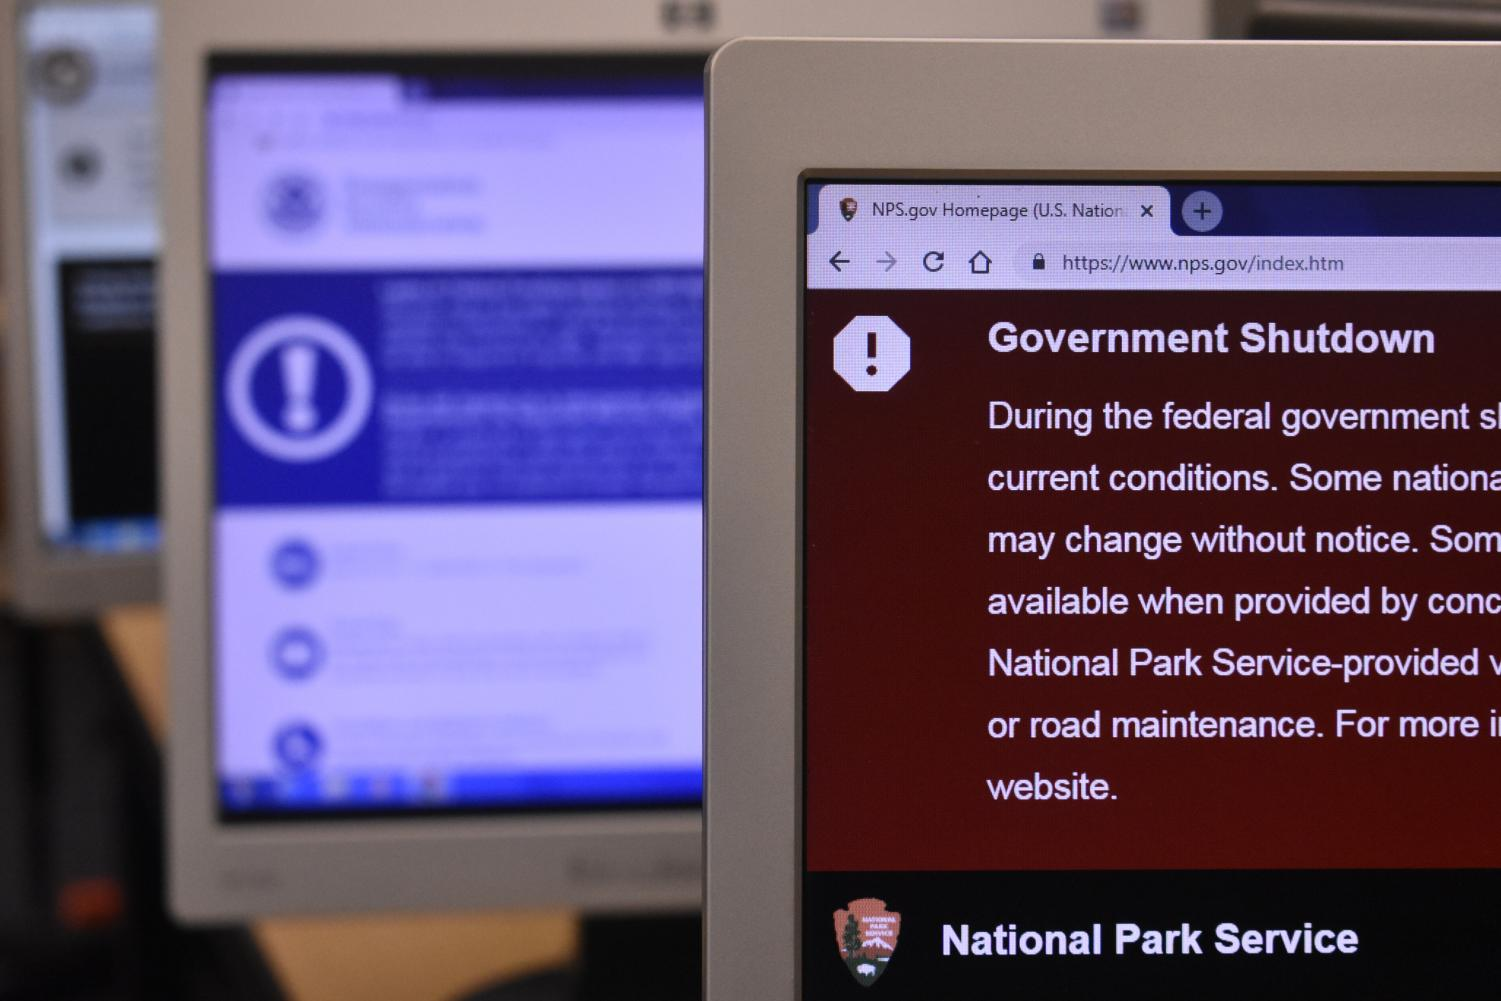 "The government shutdown has occurred after the President and Congress have not been able to agree on a budget for the distribution of federal funds. Even certain federal websites have not been updated since the shutdown. ""It shows to me that one of our basic principles of democracy, compromise, is lacking,"" said Decaro."